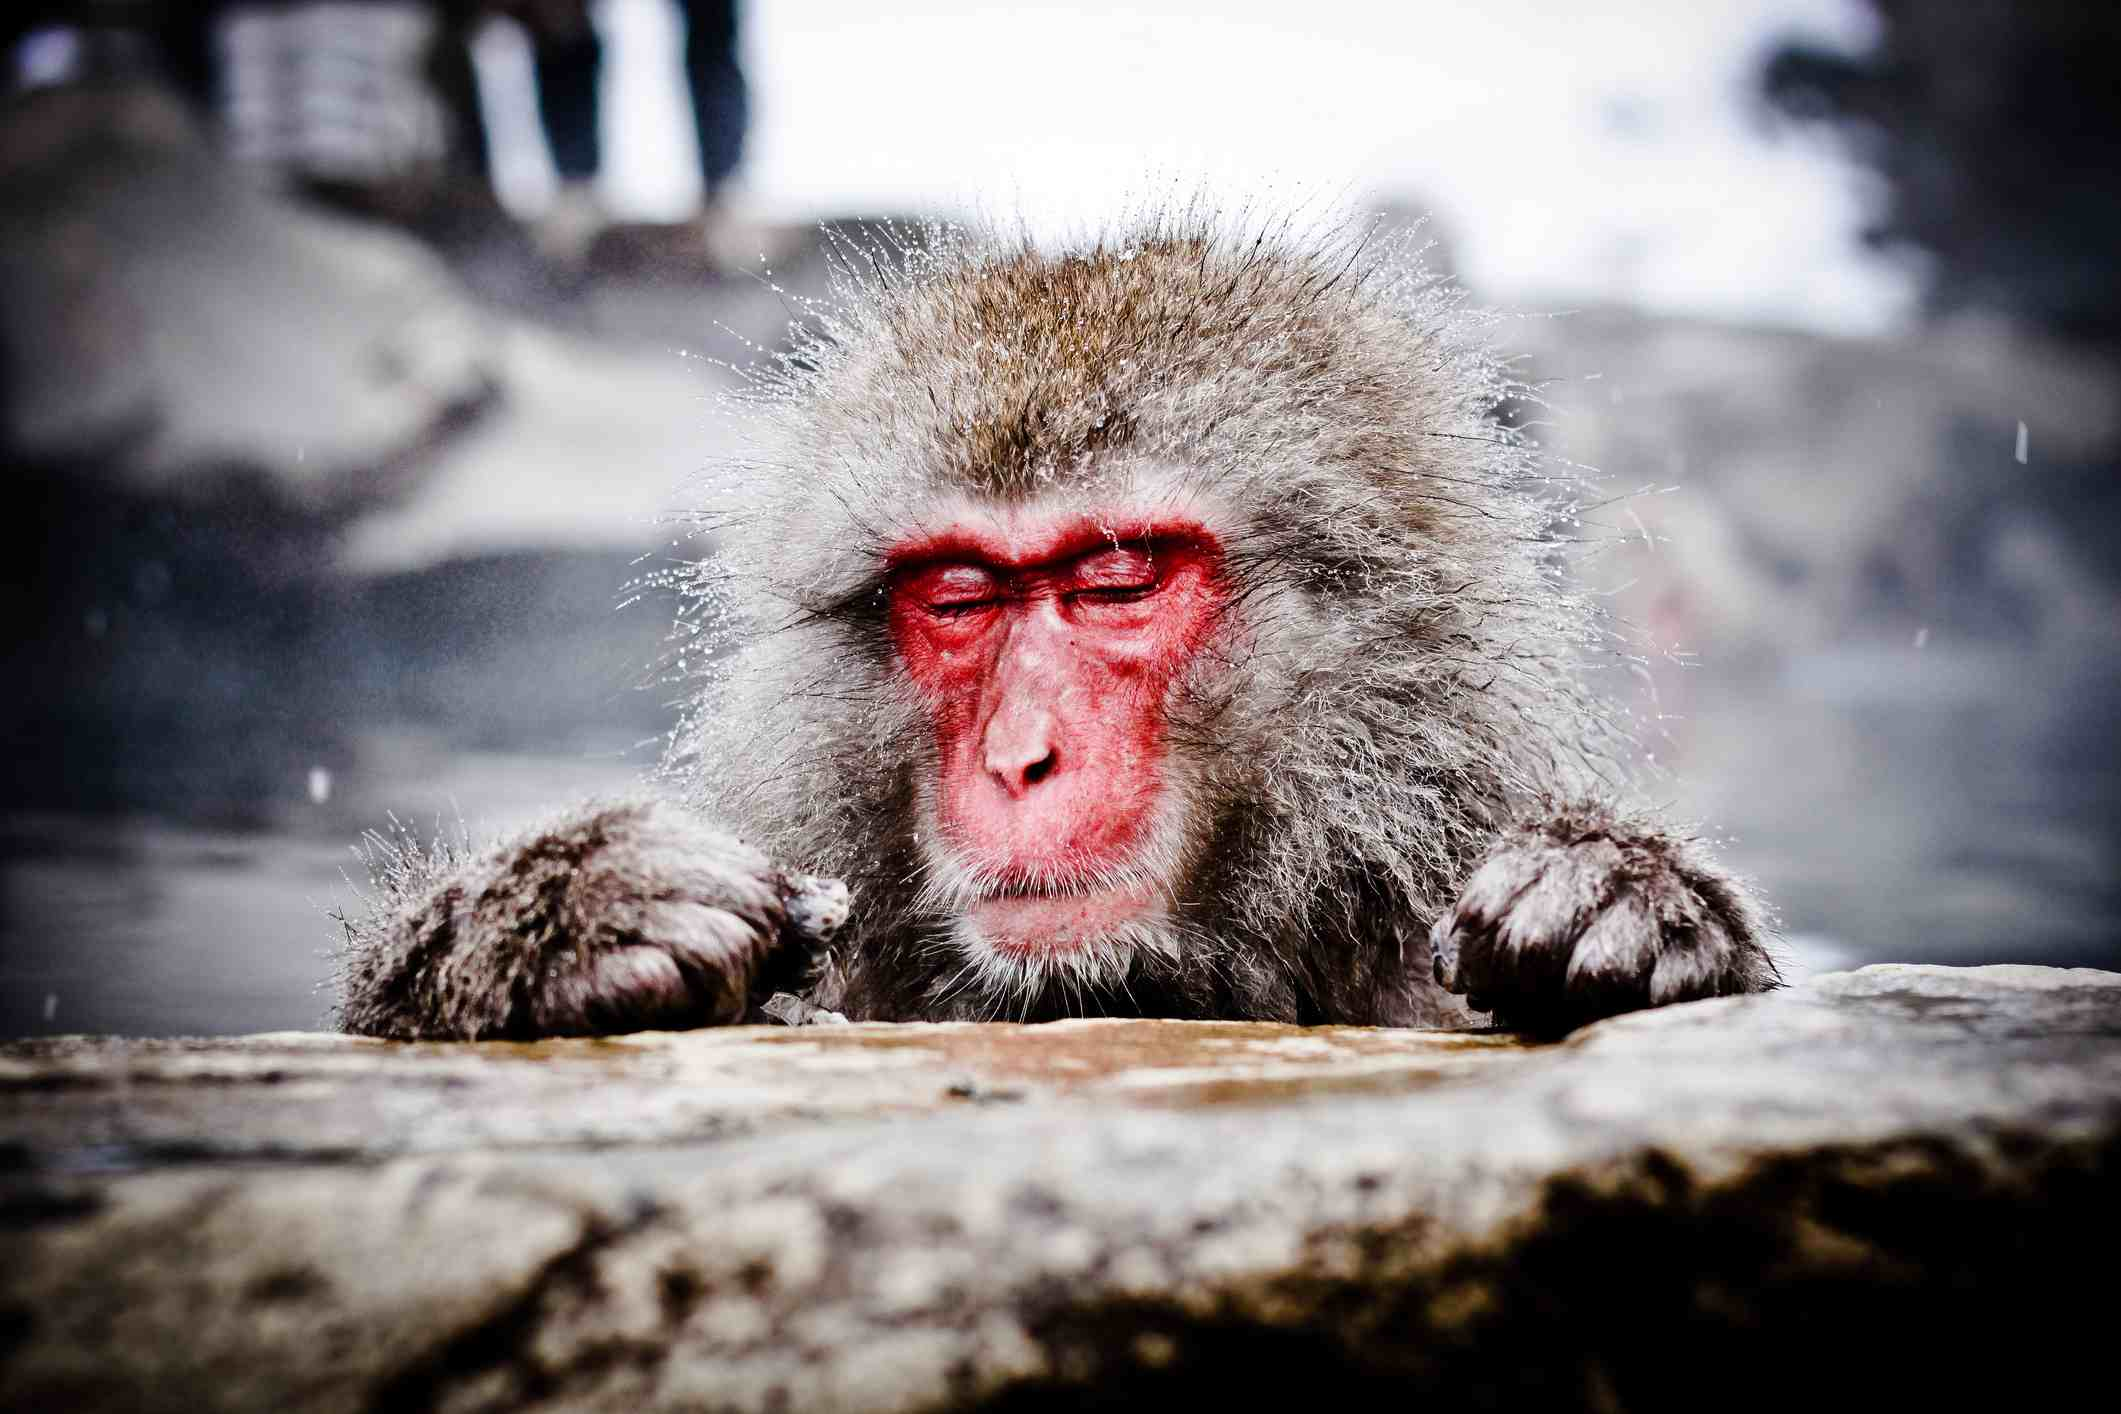 Japanese macaque in hot spring, Shibu Onsen